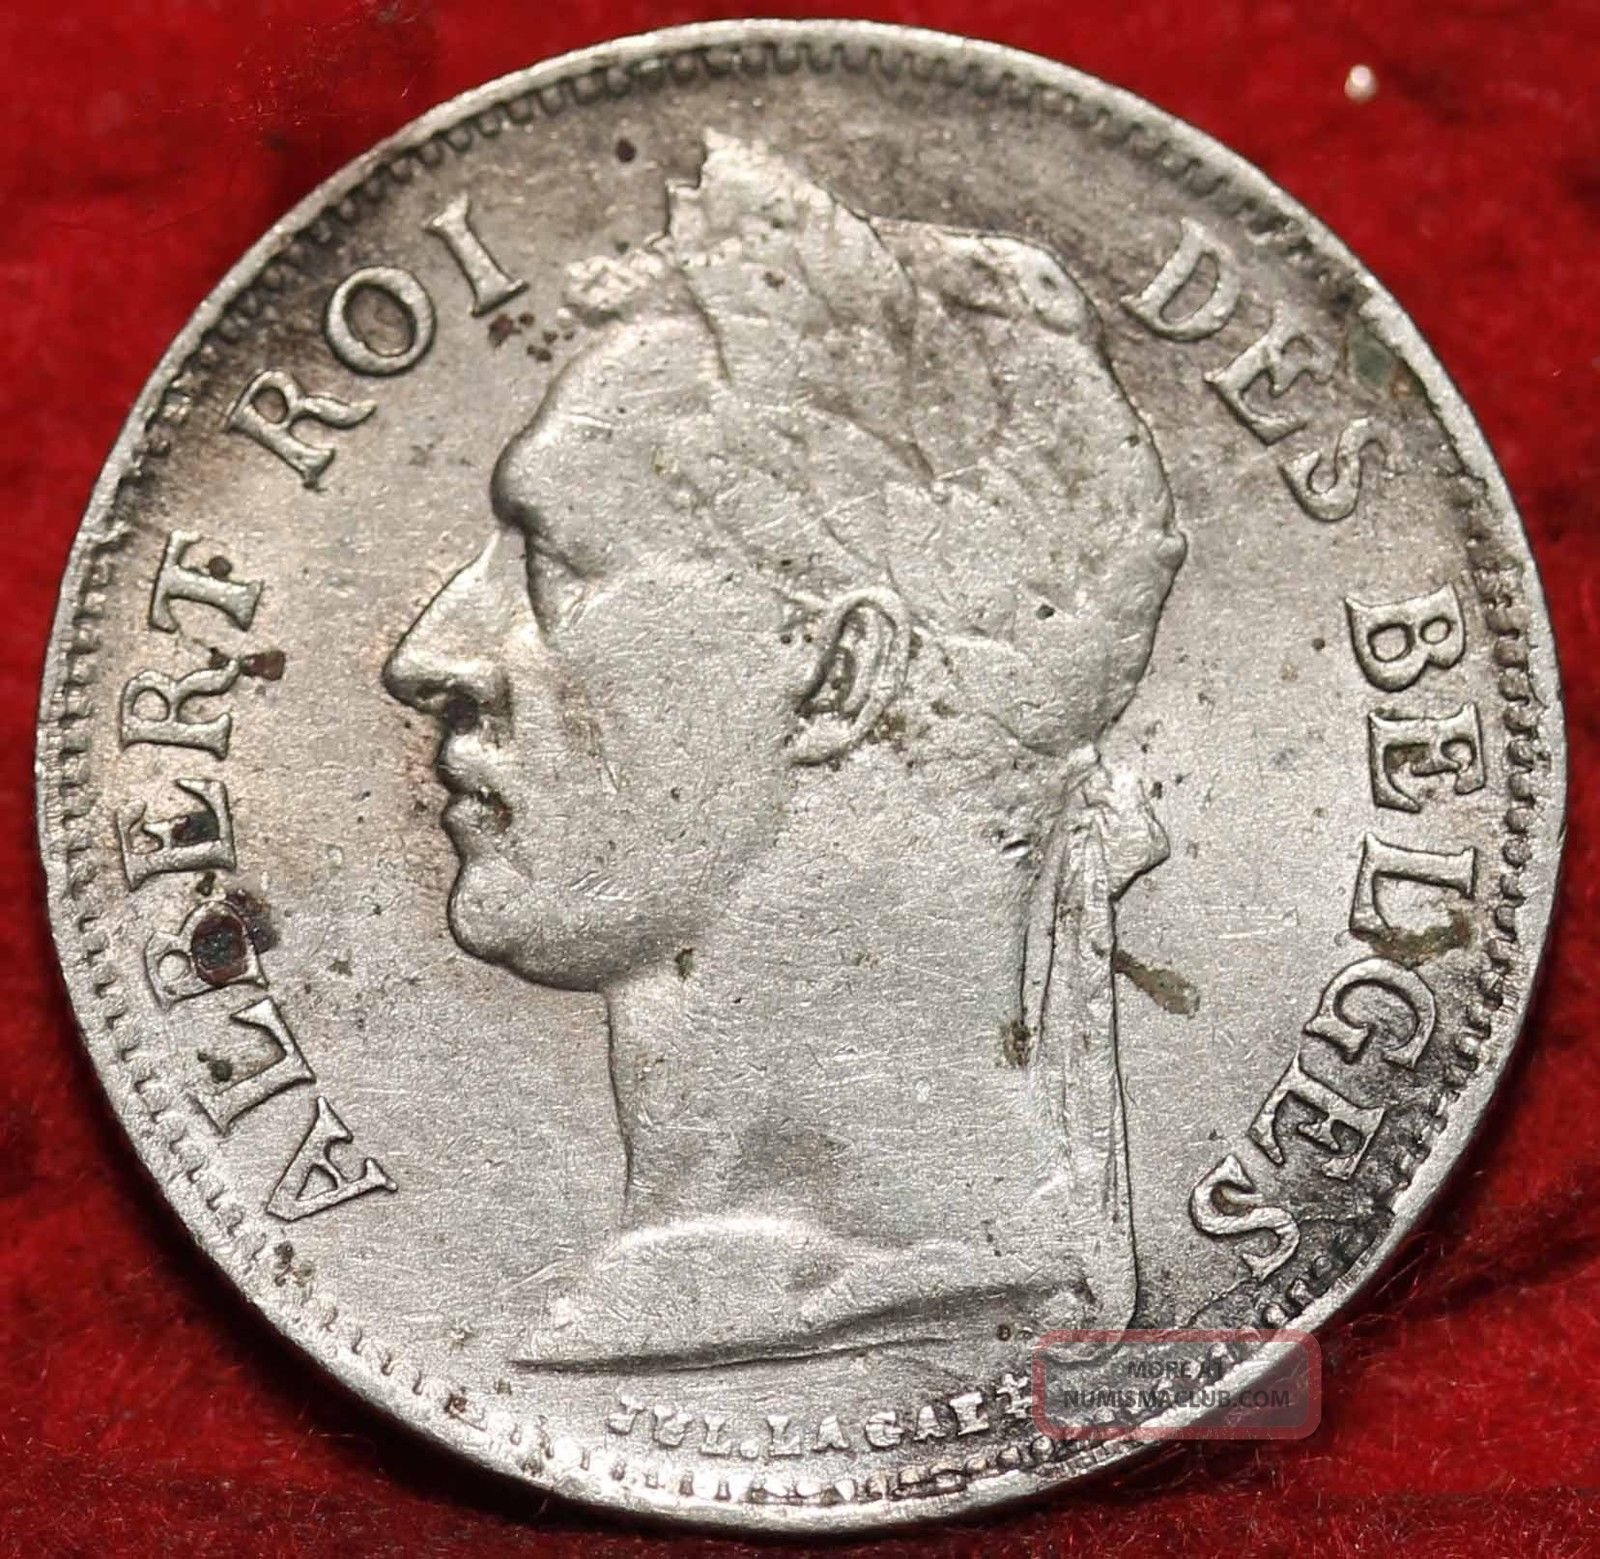 1926 Belgian Congo 50 Cents Foreign Coin S/h Europe photo